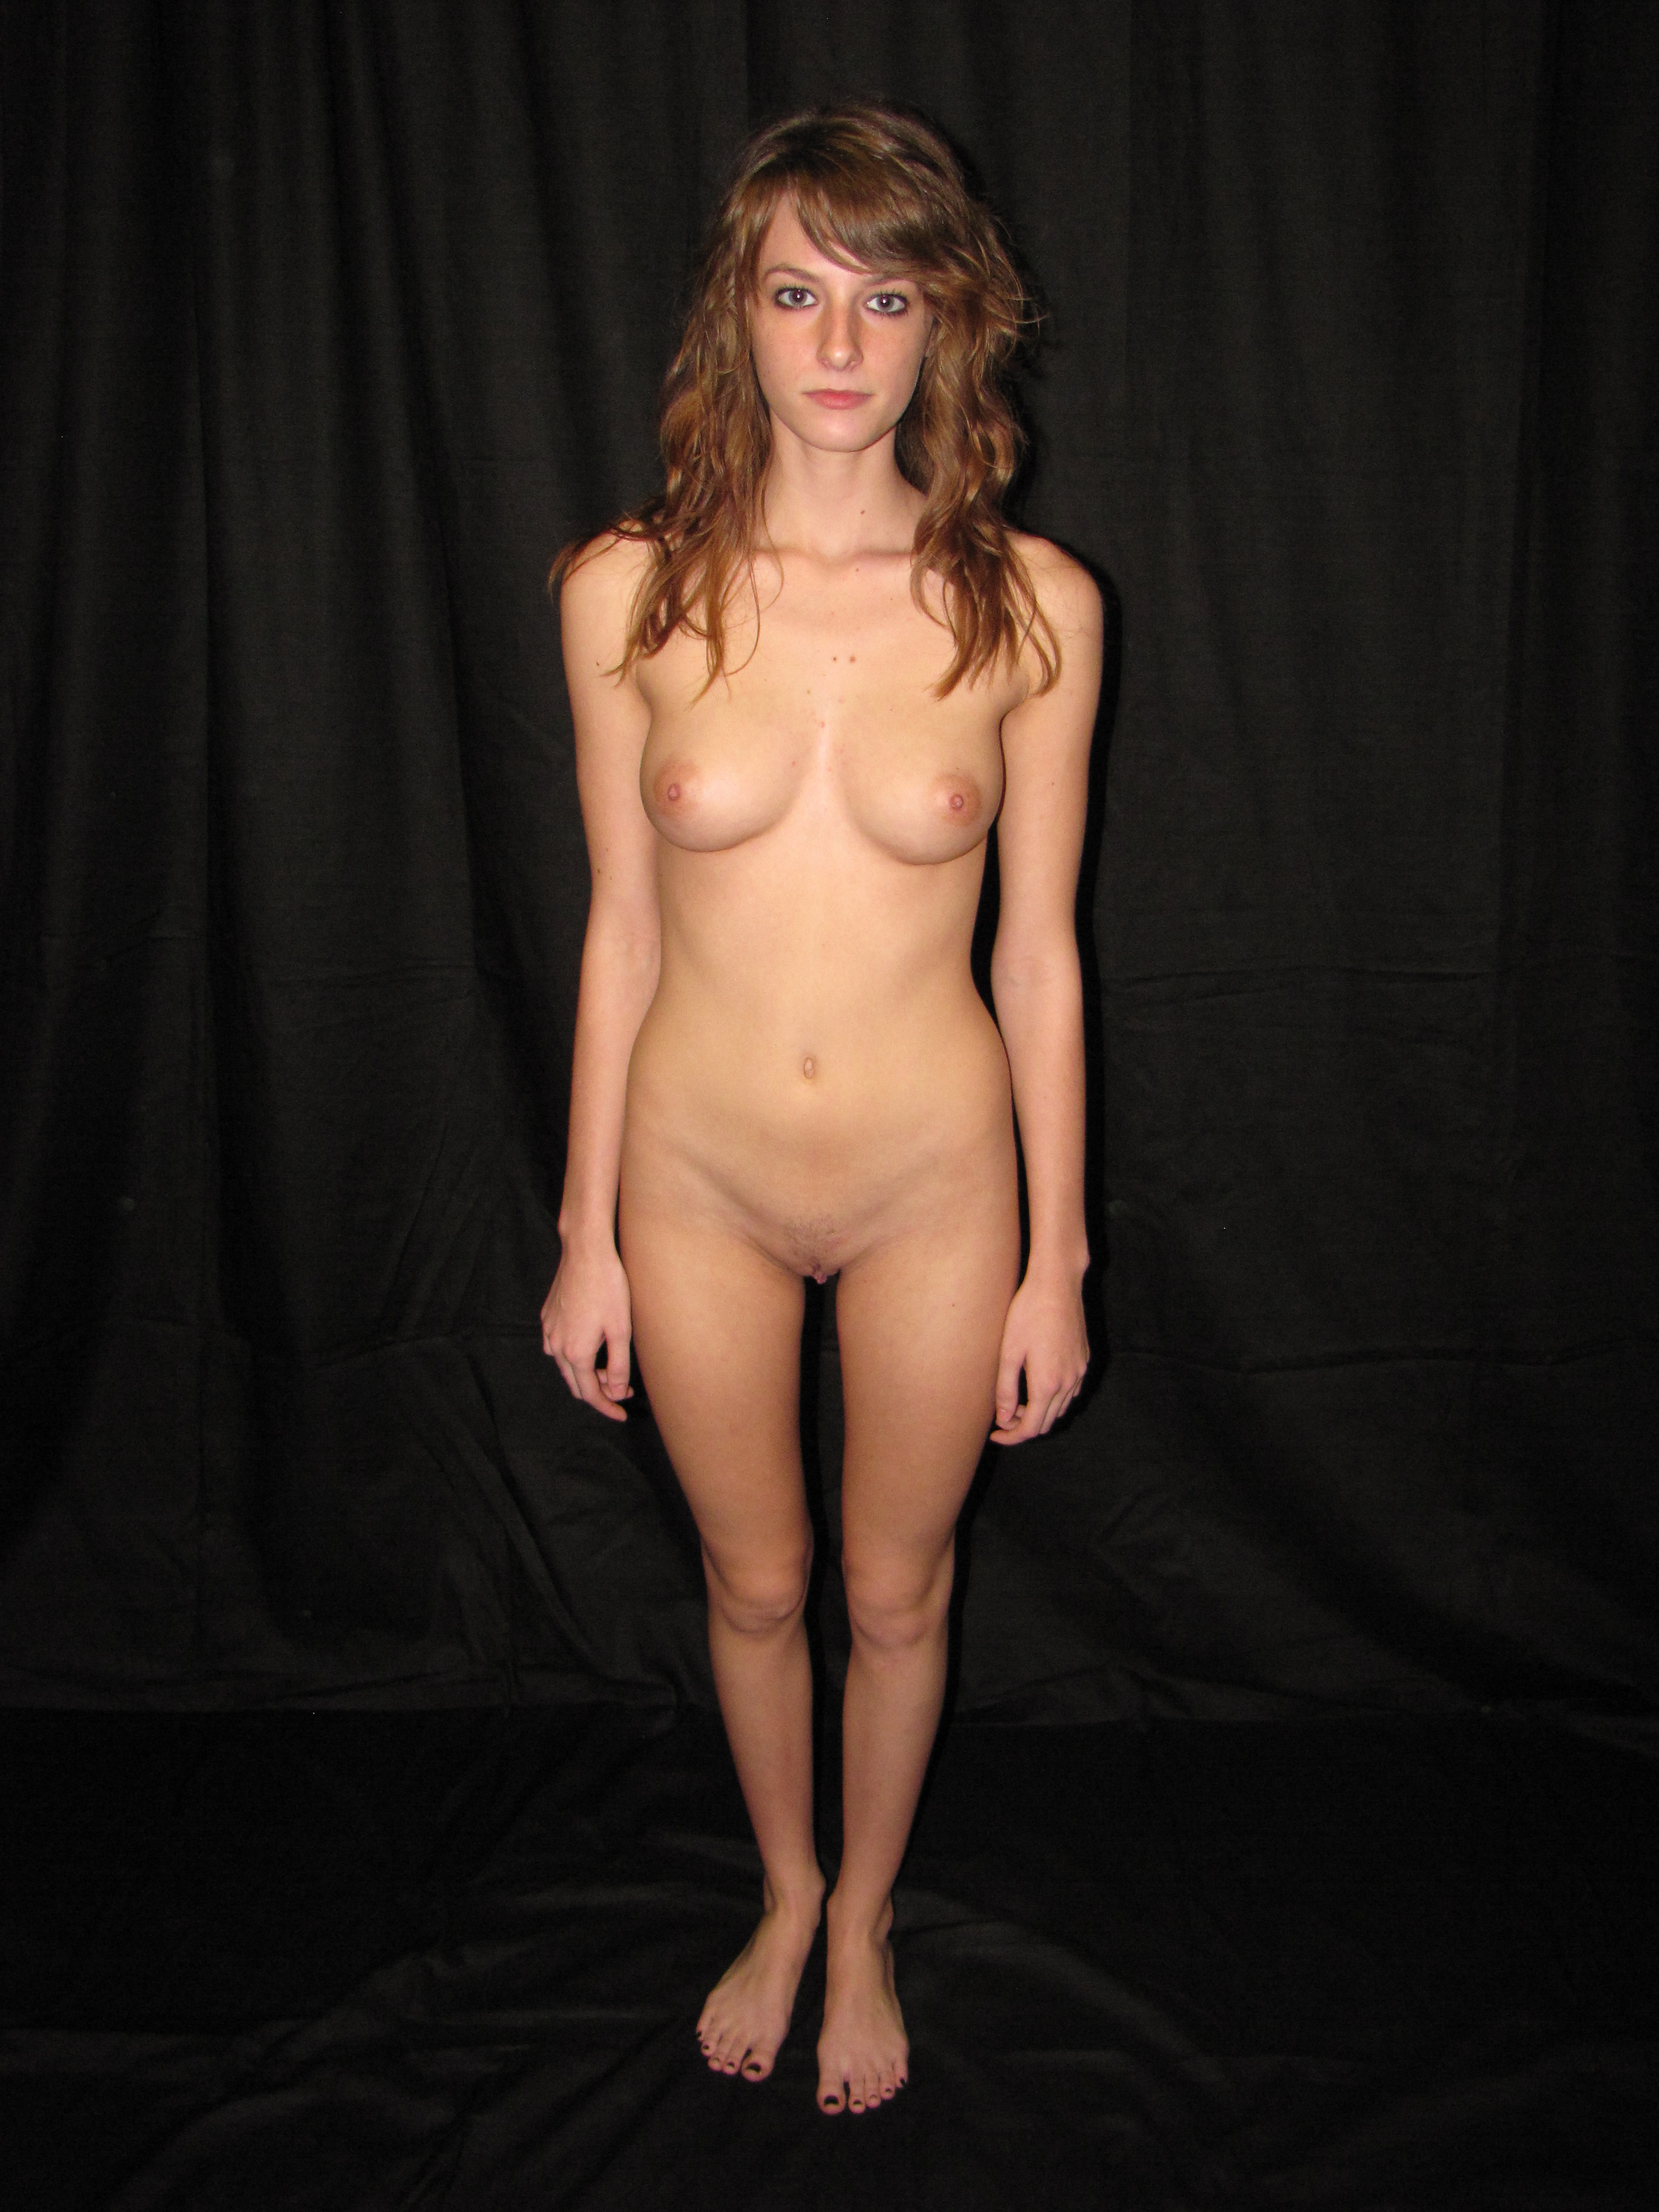 ex-girlfriend-nude-amateurs-girls-private-photo-mix-vol4-43